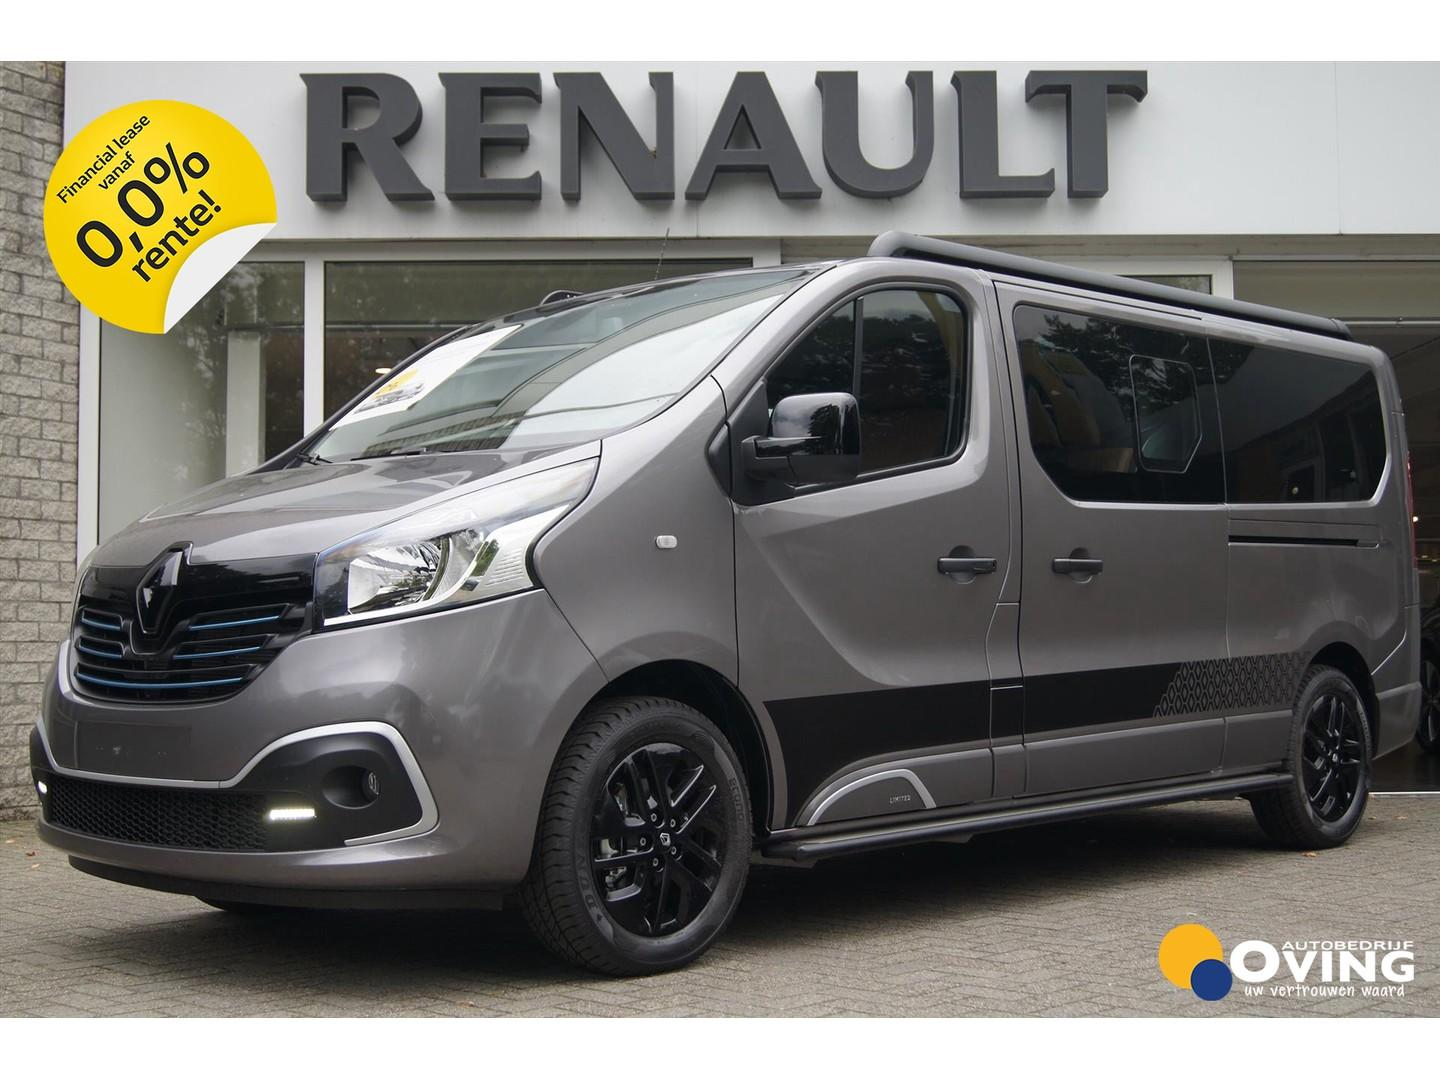 Renault Trafic L2h1 t29 dc energy dci 145 tt limited